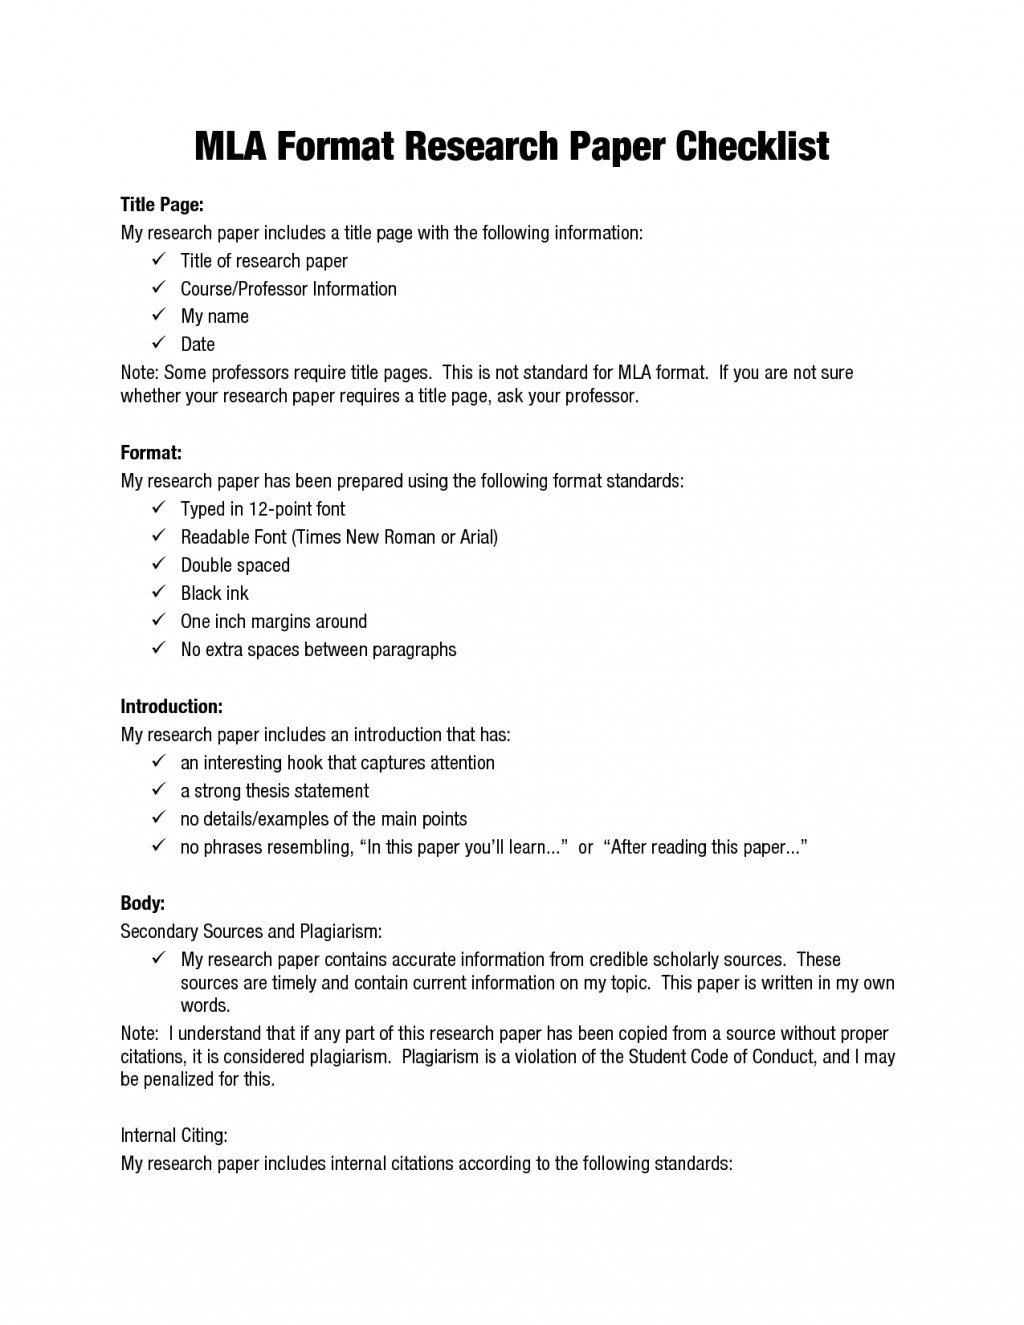 002 Checklist For Writing Research Paper In Apa Fearsome A Style Large